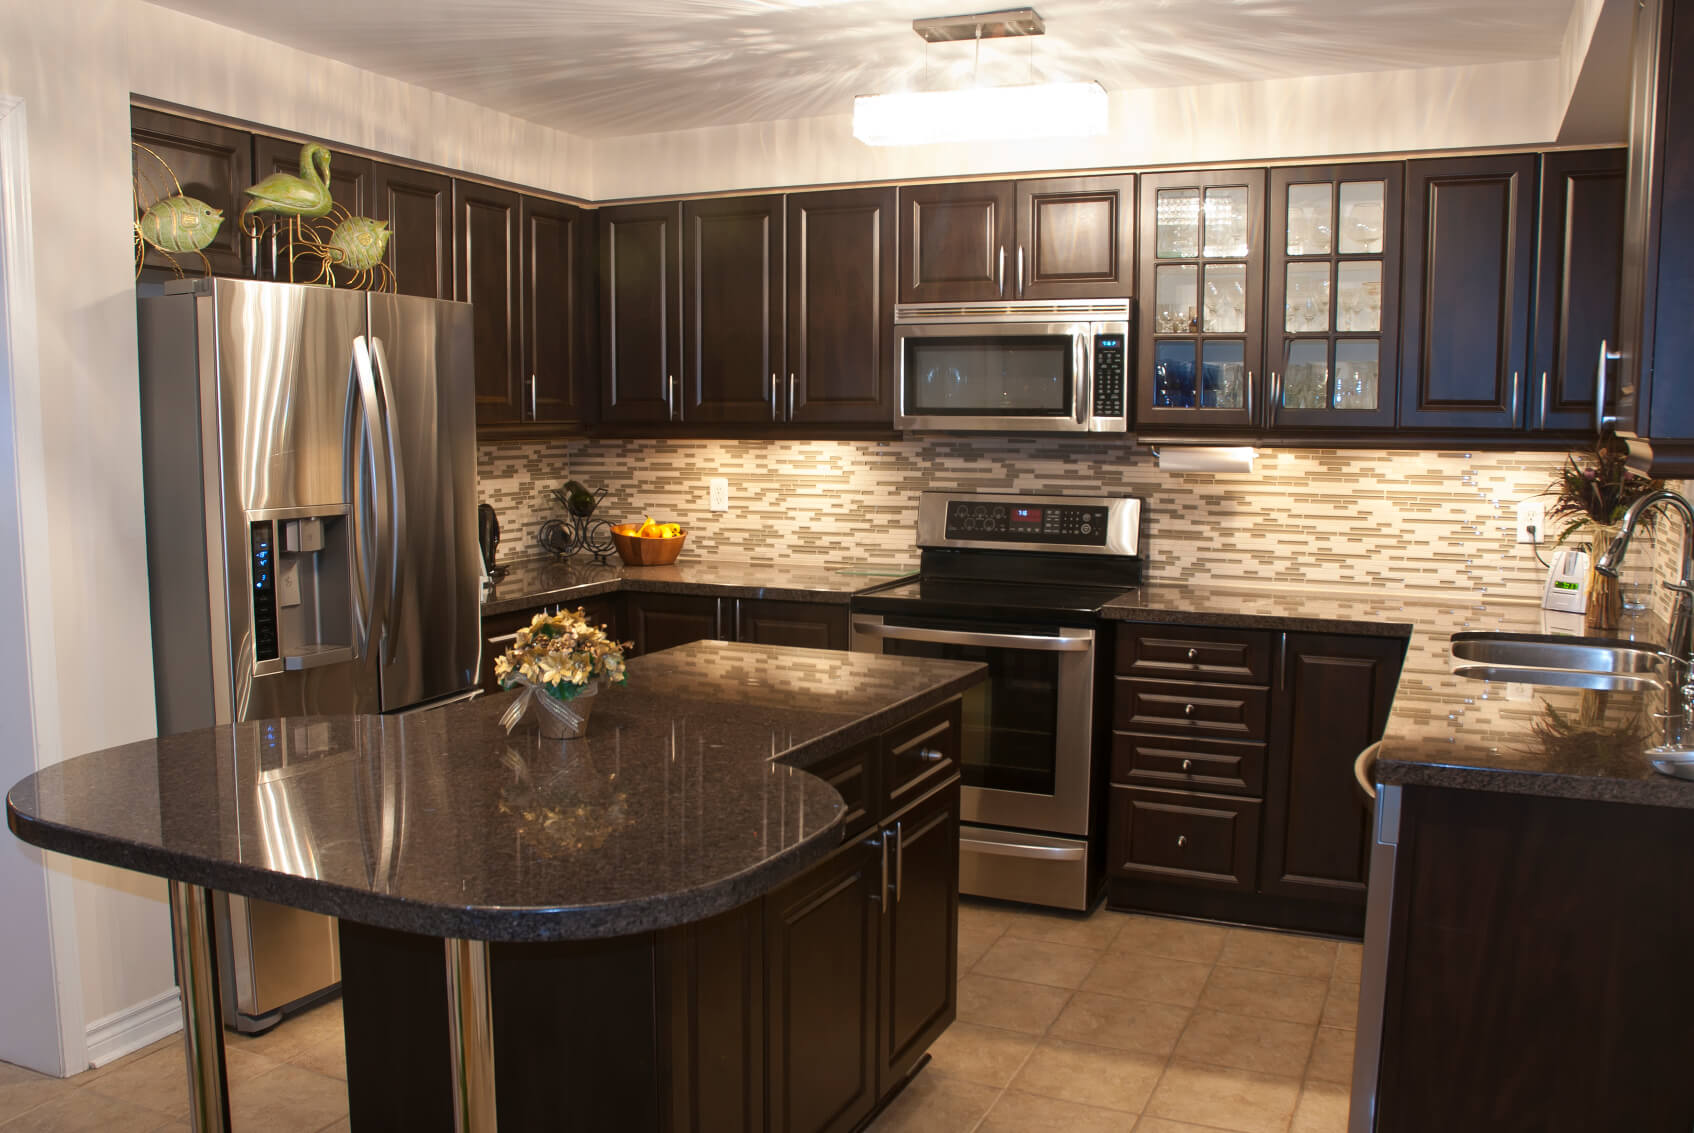 dark kitchen cabinets black kitchen countertops Cozy kitchen is stuffed with dark wood cabinetry with brushed metal hardware Black marble